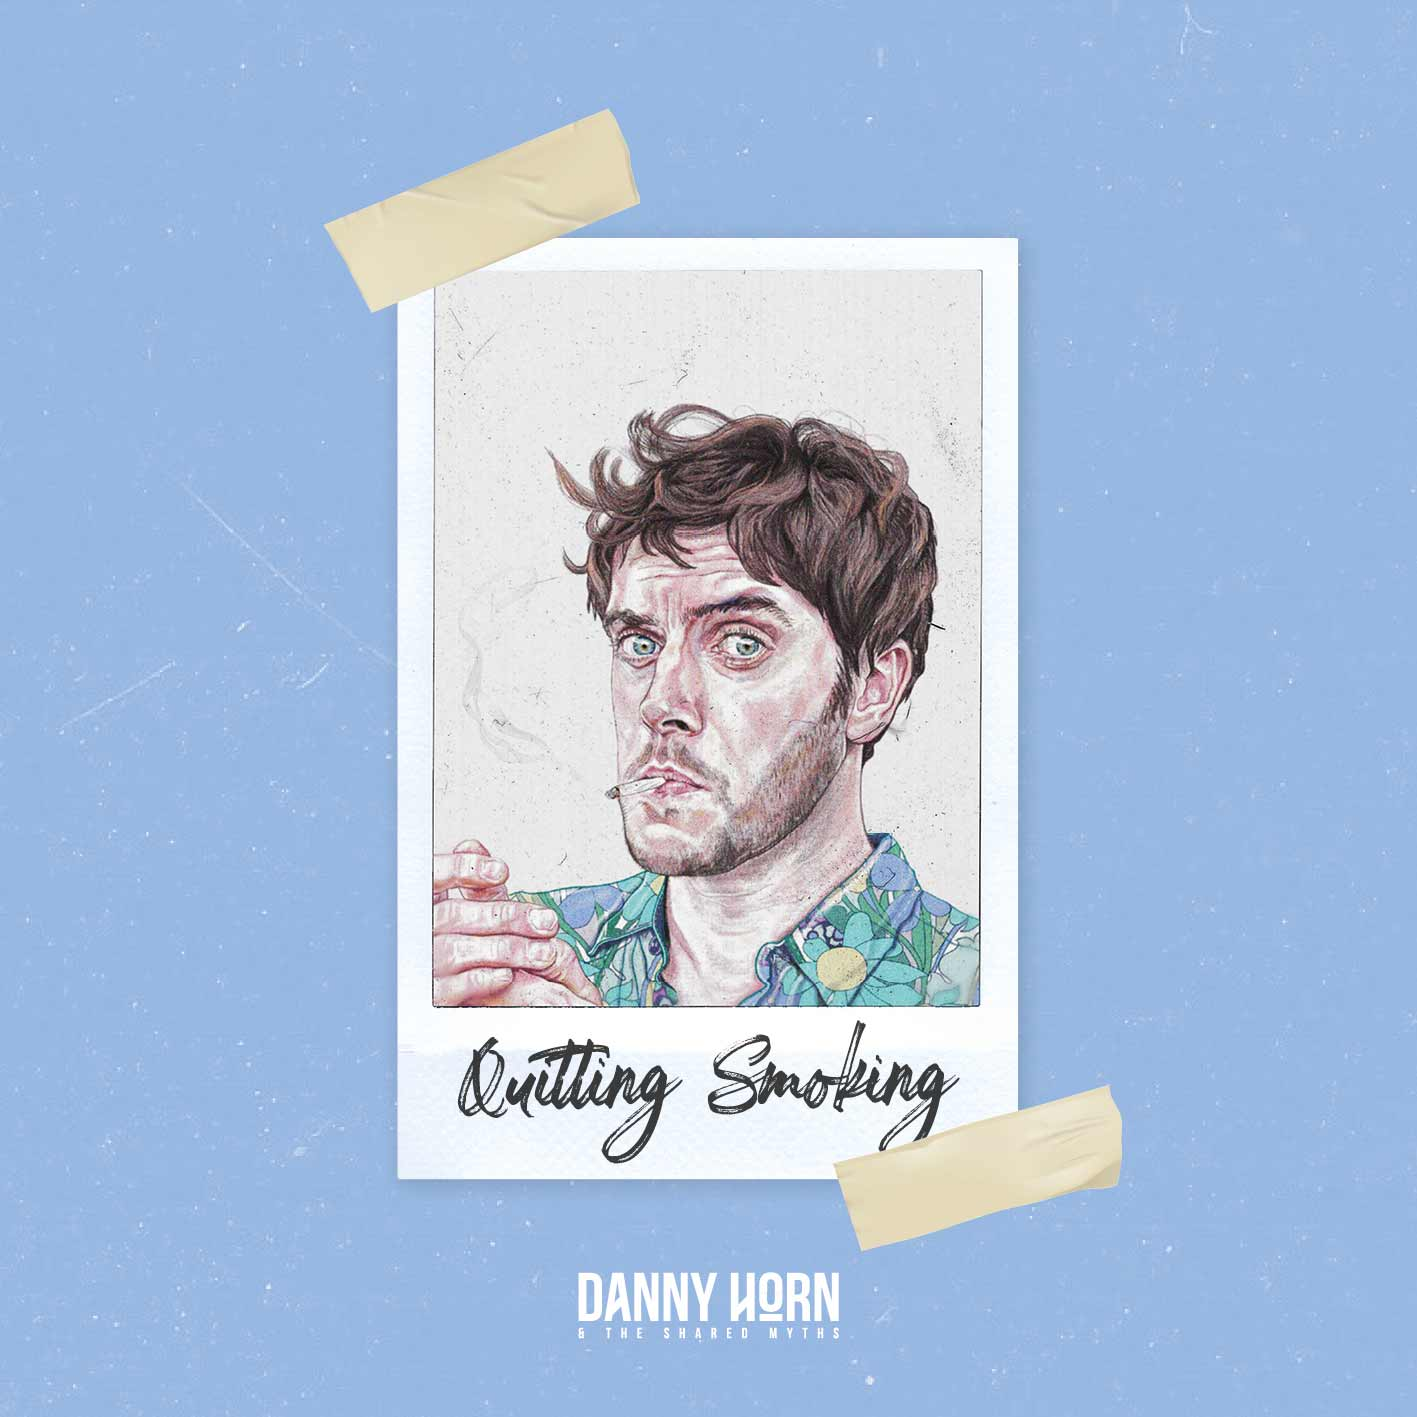 Quitting Smoking, New Album, Danny Horn & The Shared Myths